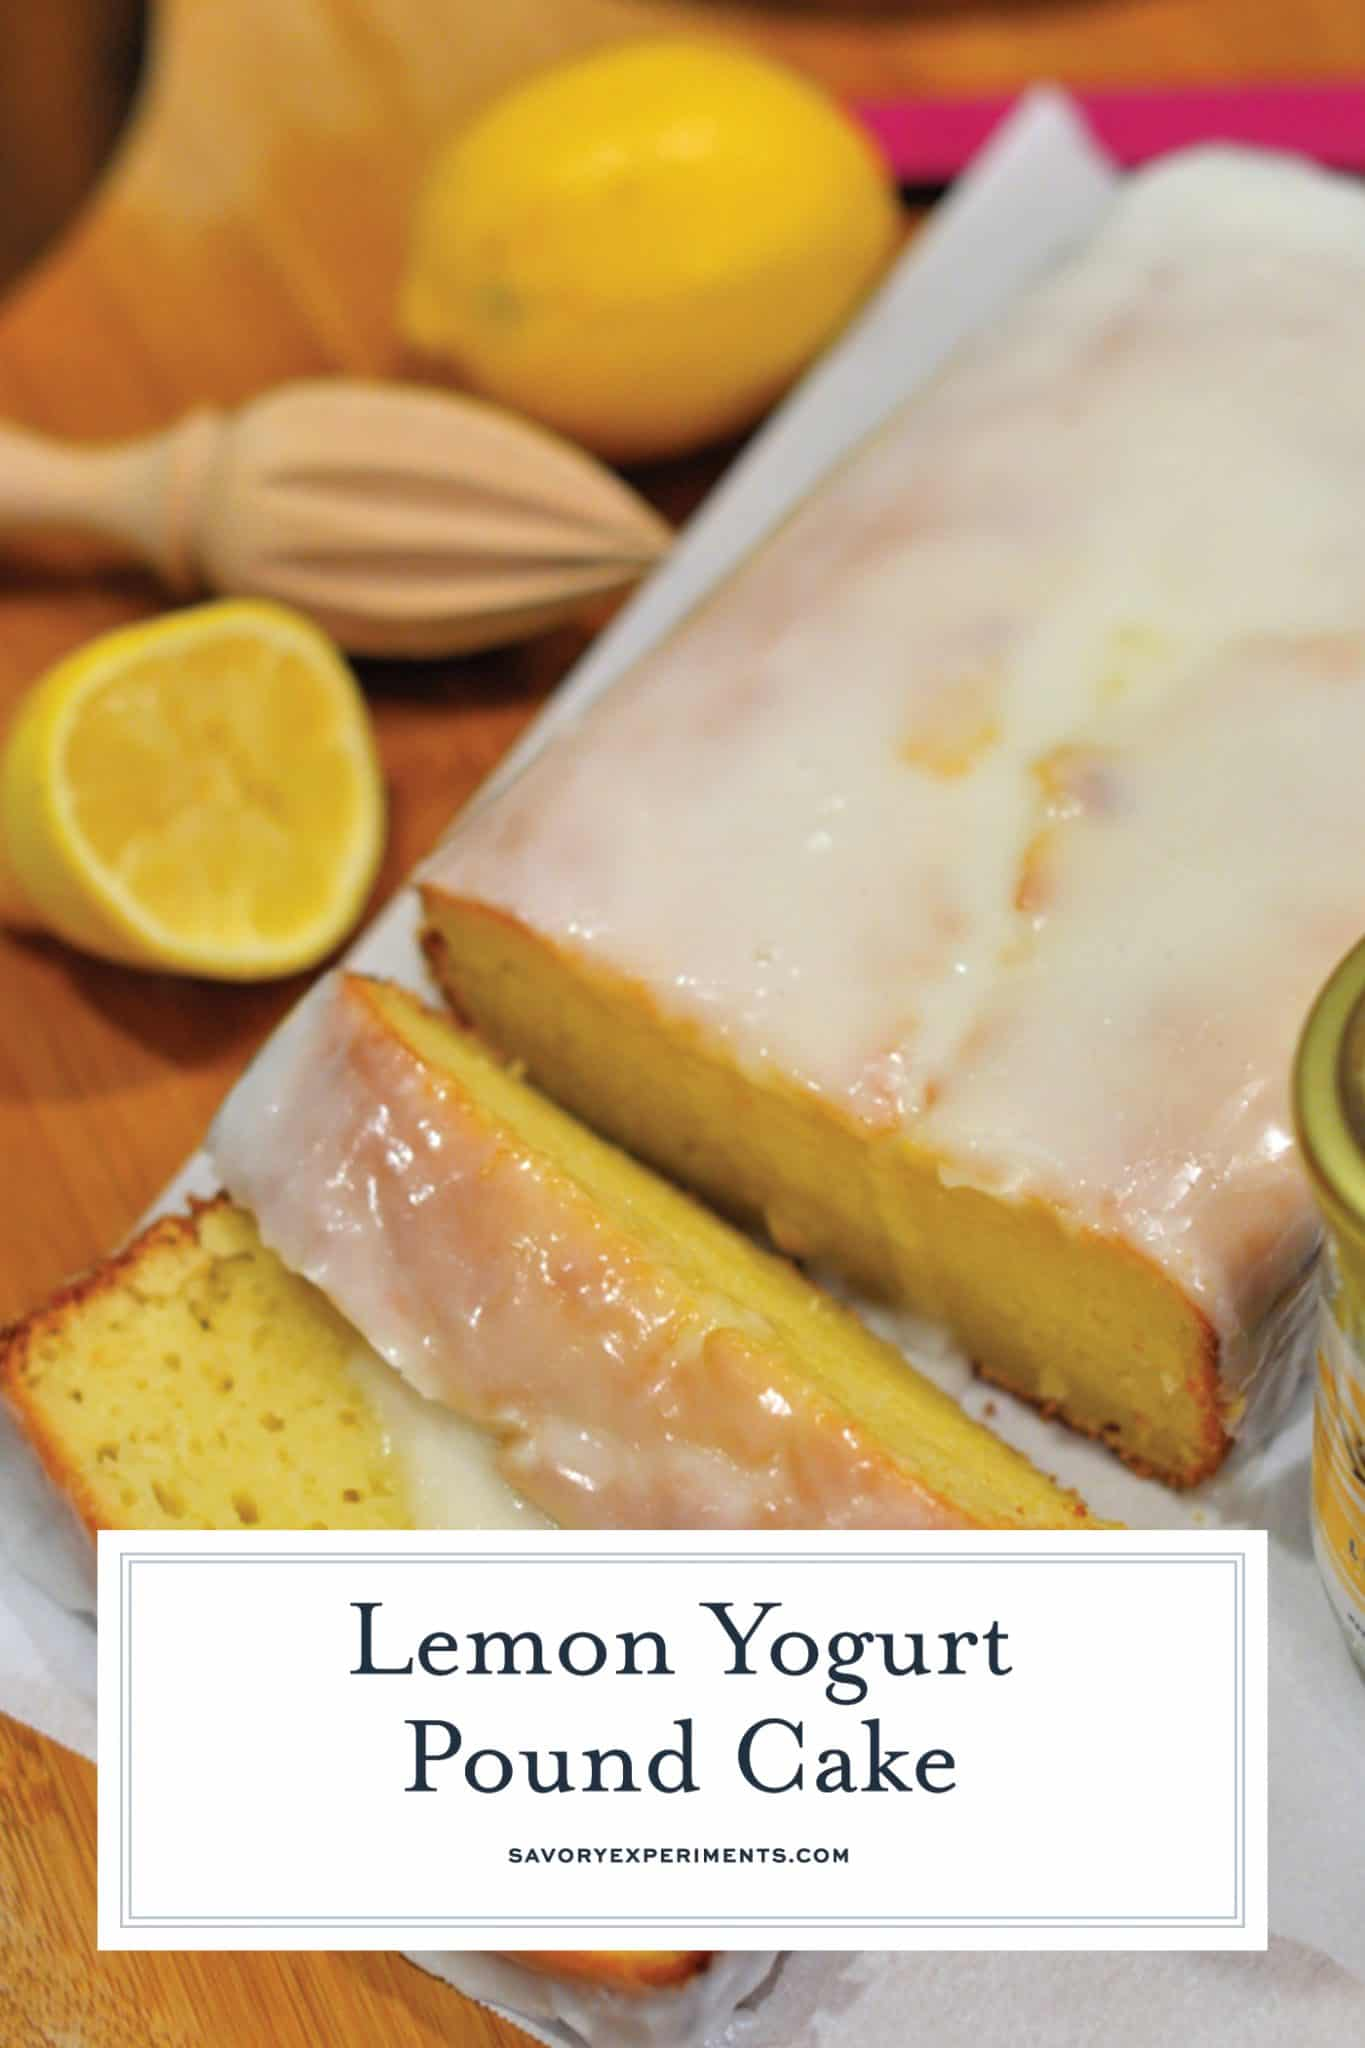 Lemon Yogurt Pound Cake is moist and rich while slashing the fat from not using any butter! An easy pound cake recipe perfect for breakfast, brunch, dessert, tea or coffee. #lemonpoundcake #yogurtpoundcake www.savoryexperiments.com